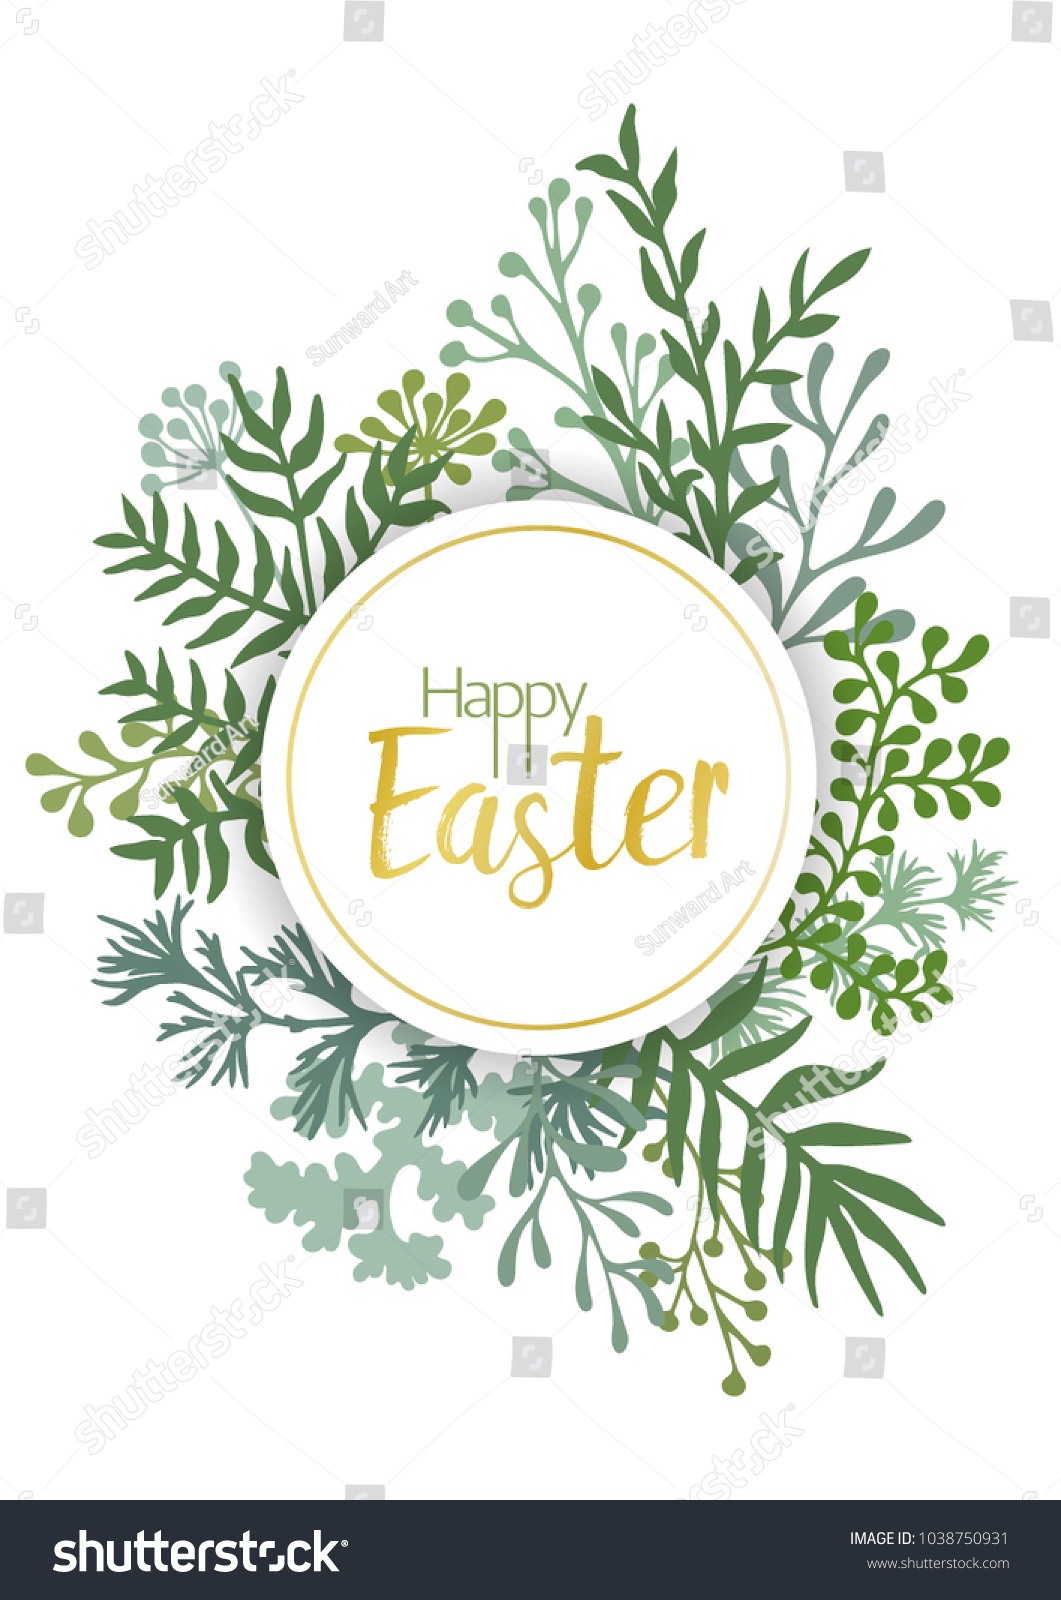 Happy Easter Vector Cards Herbal Twigs Stock Vector 1038750931